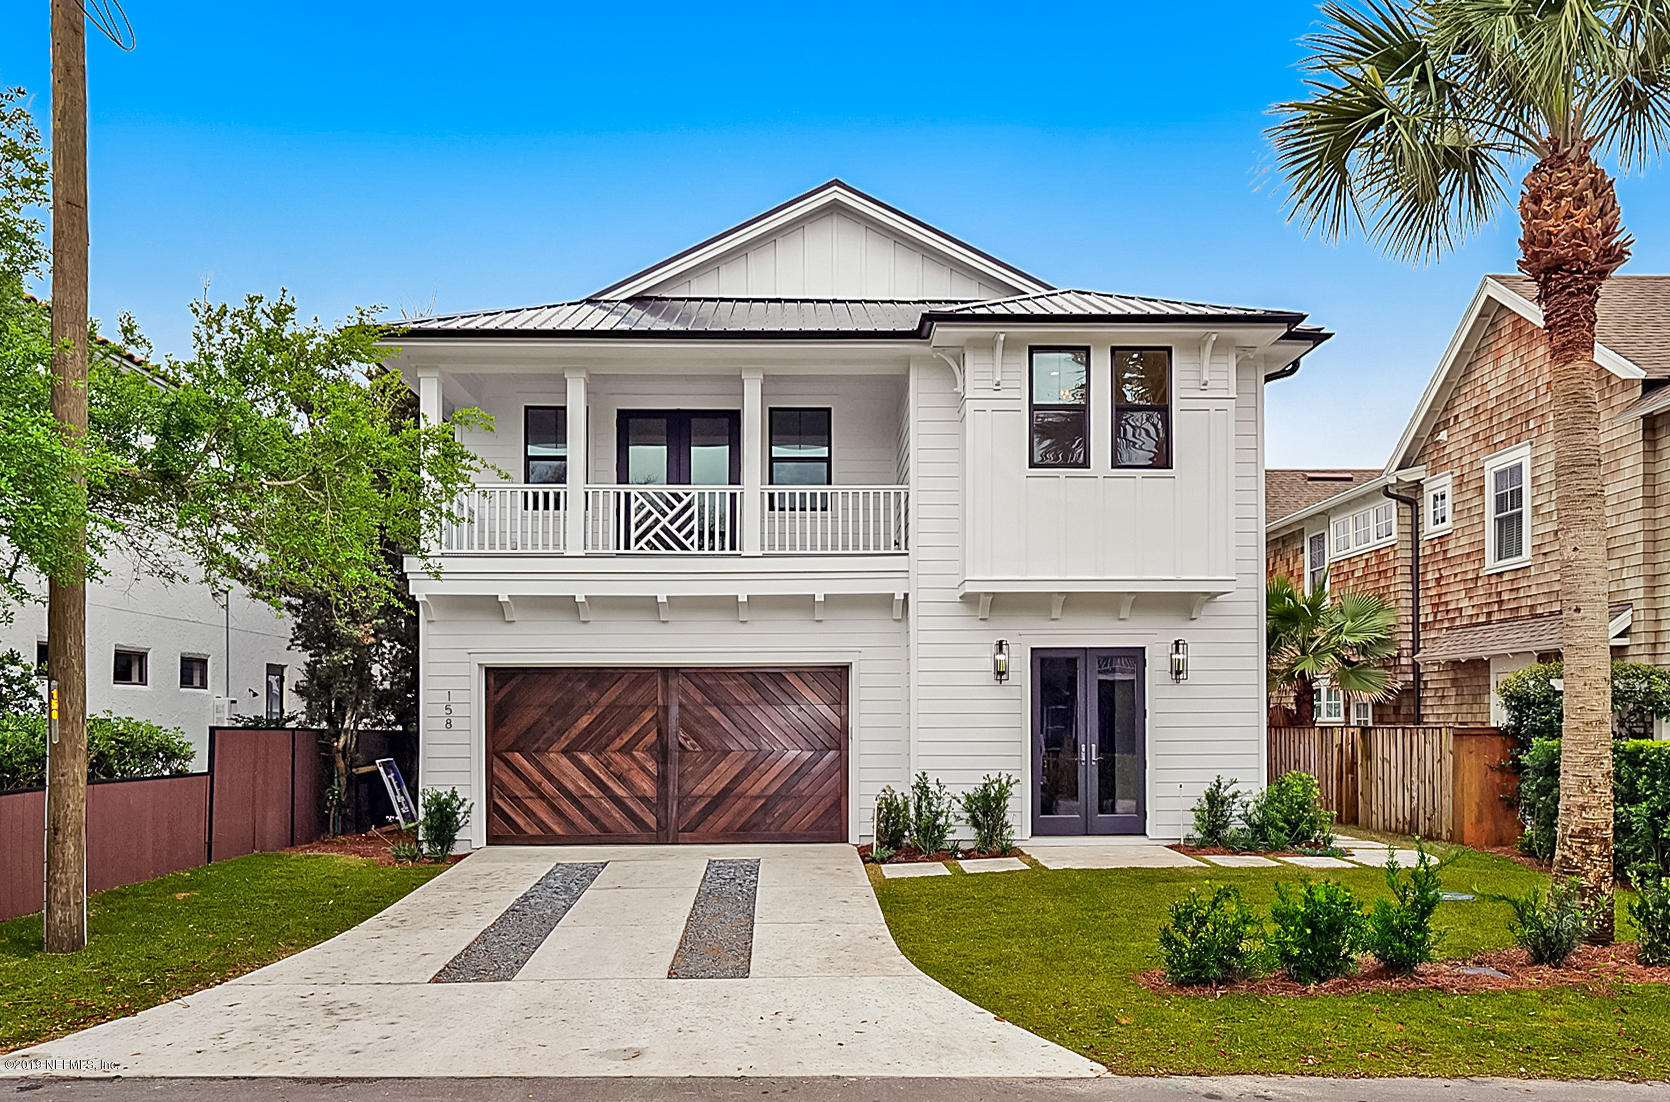 158 16TH, ATLANTIC BEACH, FLORIDA 32233, 5 Bedrooms Bedrooms, ,4 BathroomsBathrooms,Residential - single family,For sale,16TH,985979